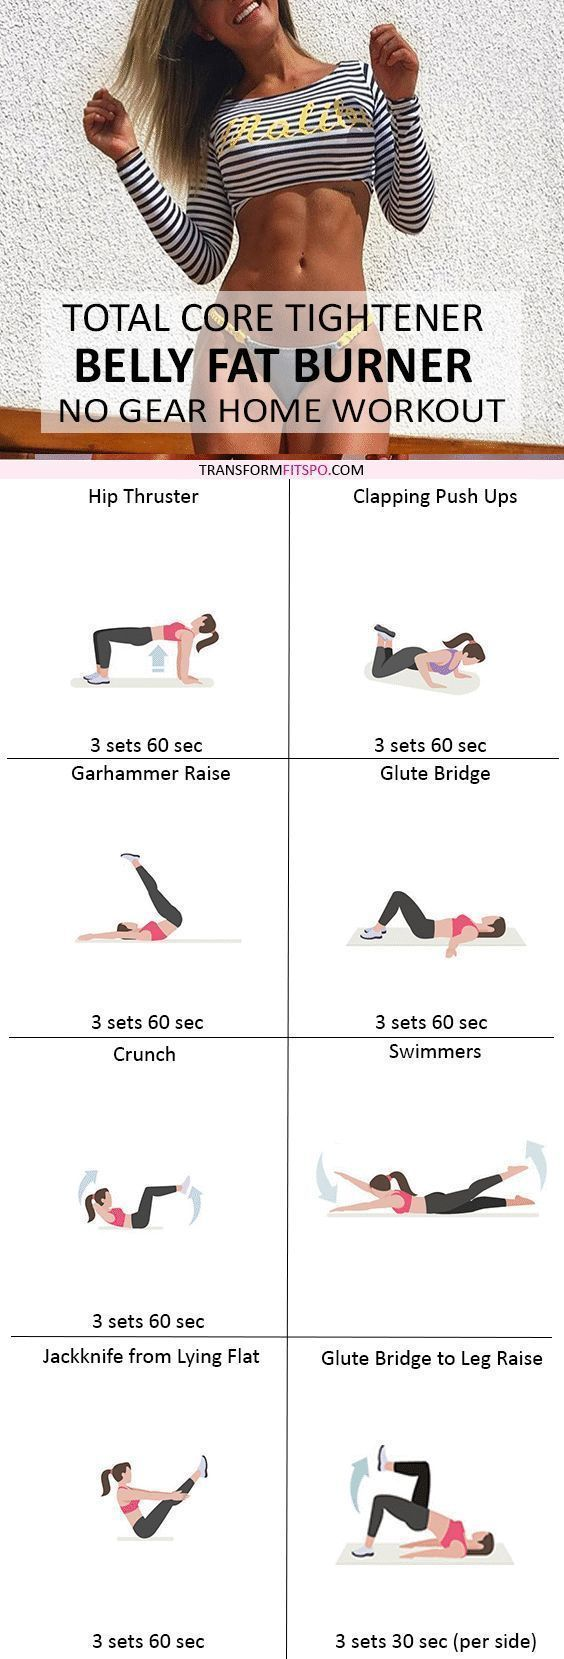 Repin and share if this workout got you in ripped shape! The results are crazy! Check the post for all of the information!